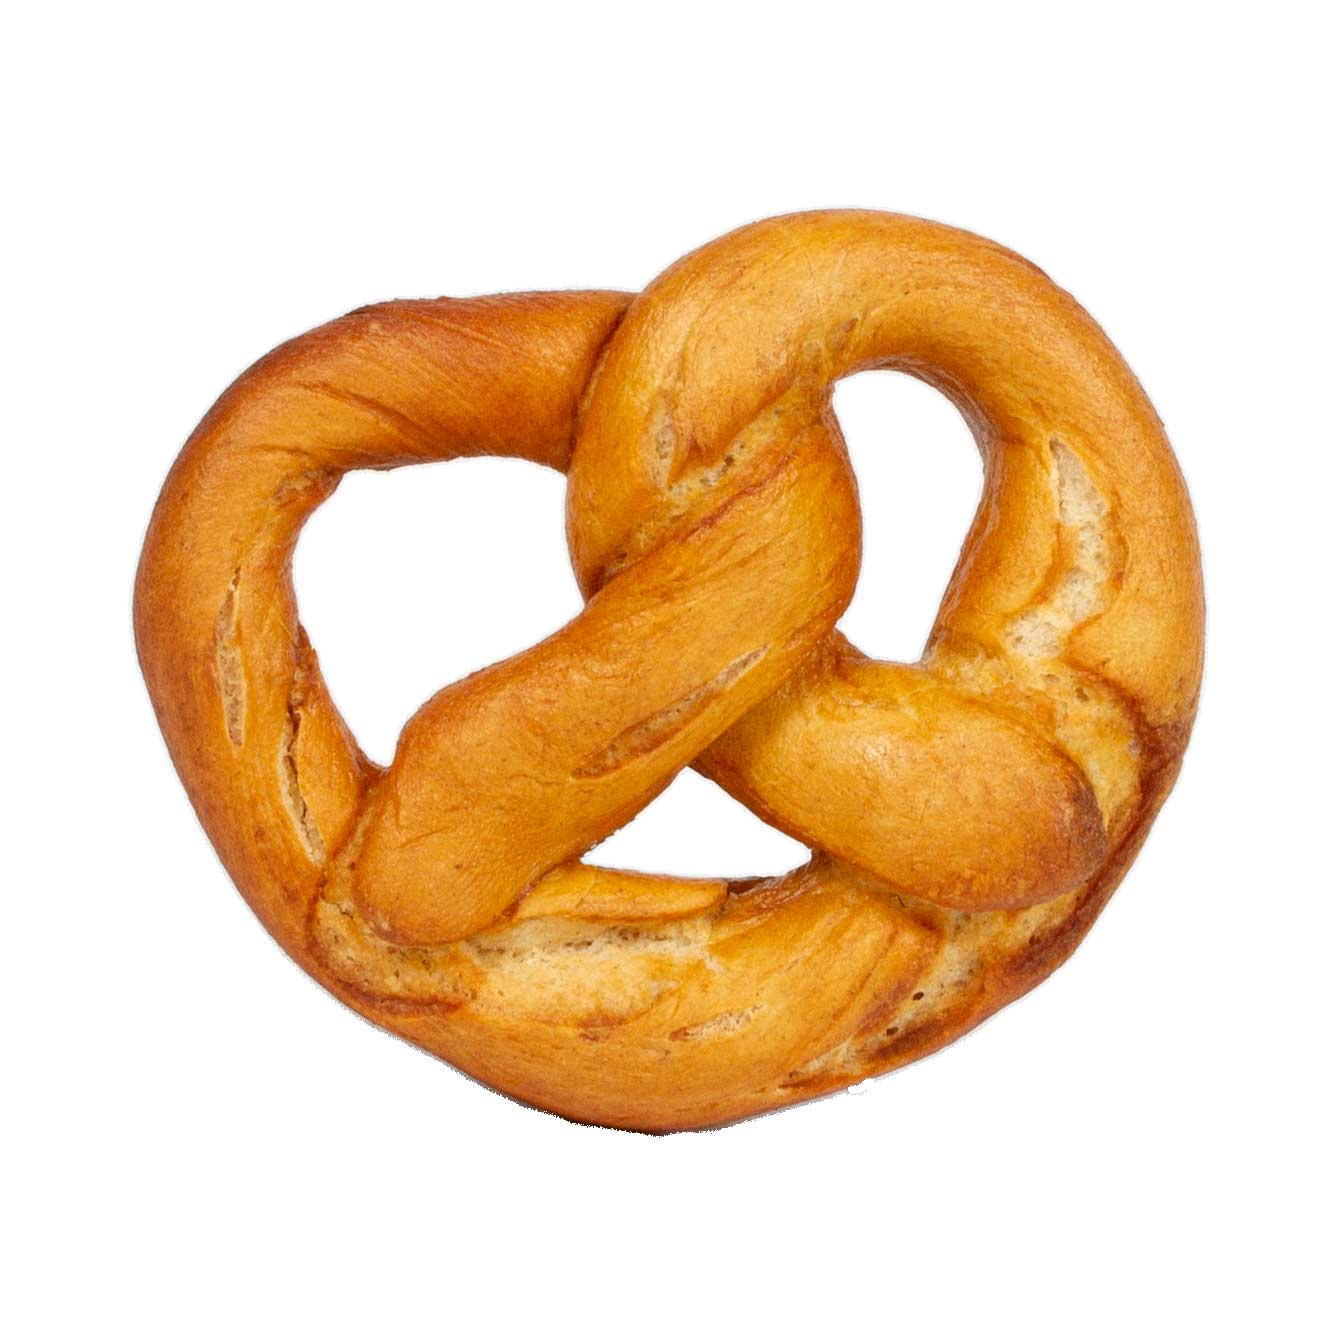 Unsalted Hearth Pretzel